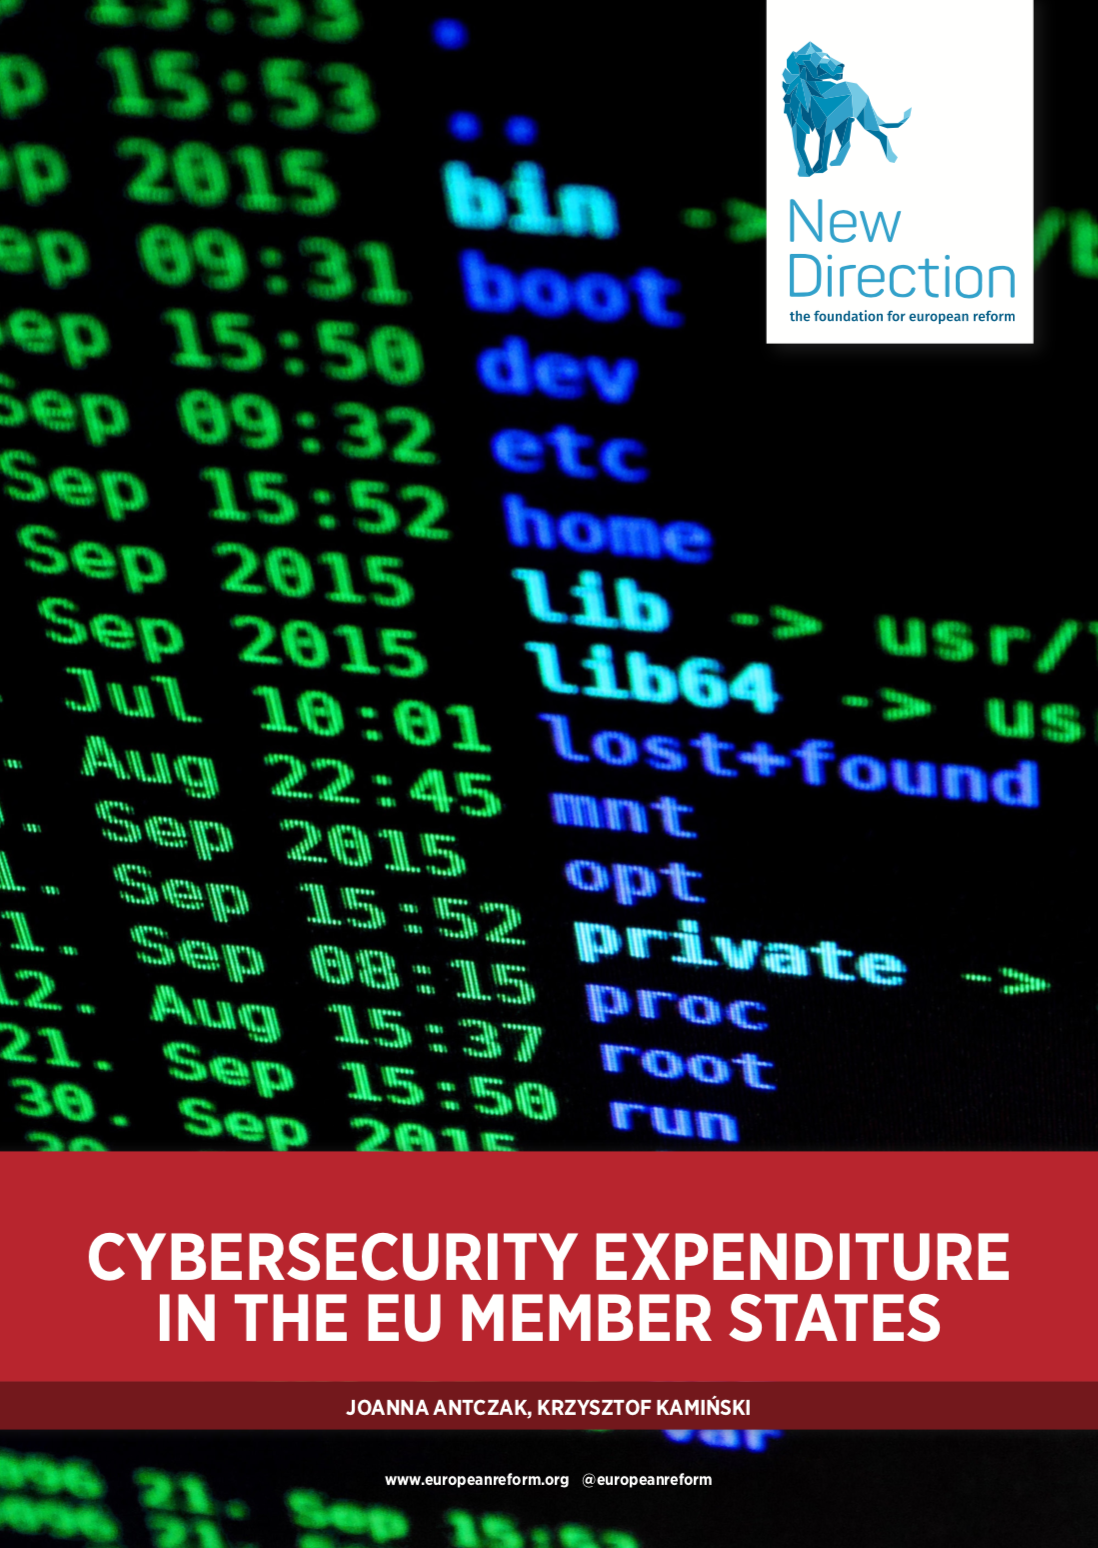 CYBERSECURITY EXPENDITURE IN THE EU MEMBER STATES